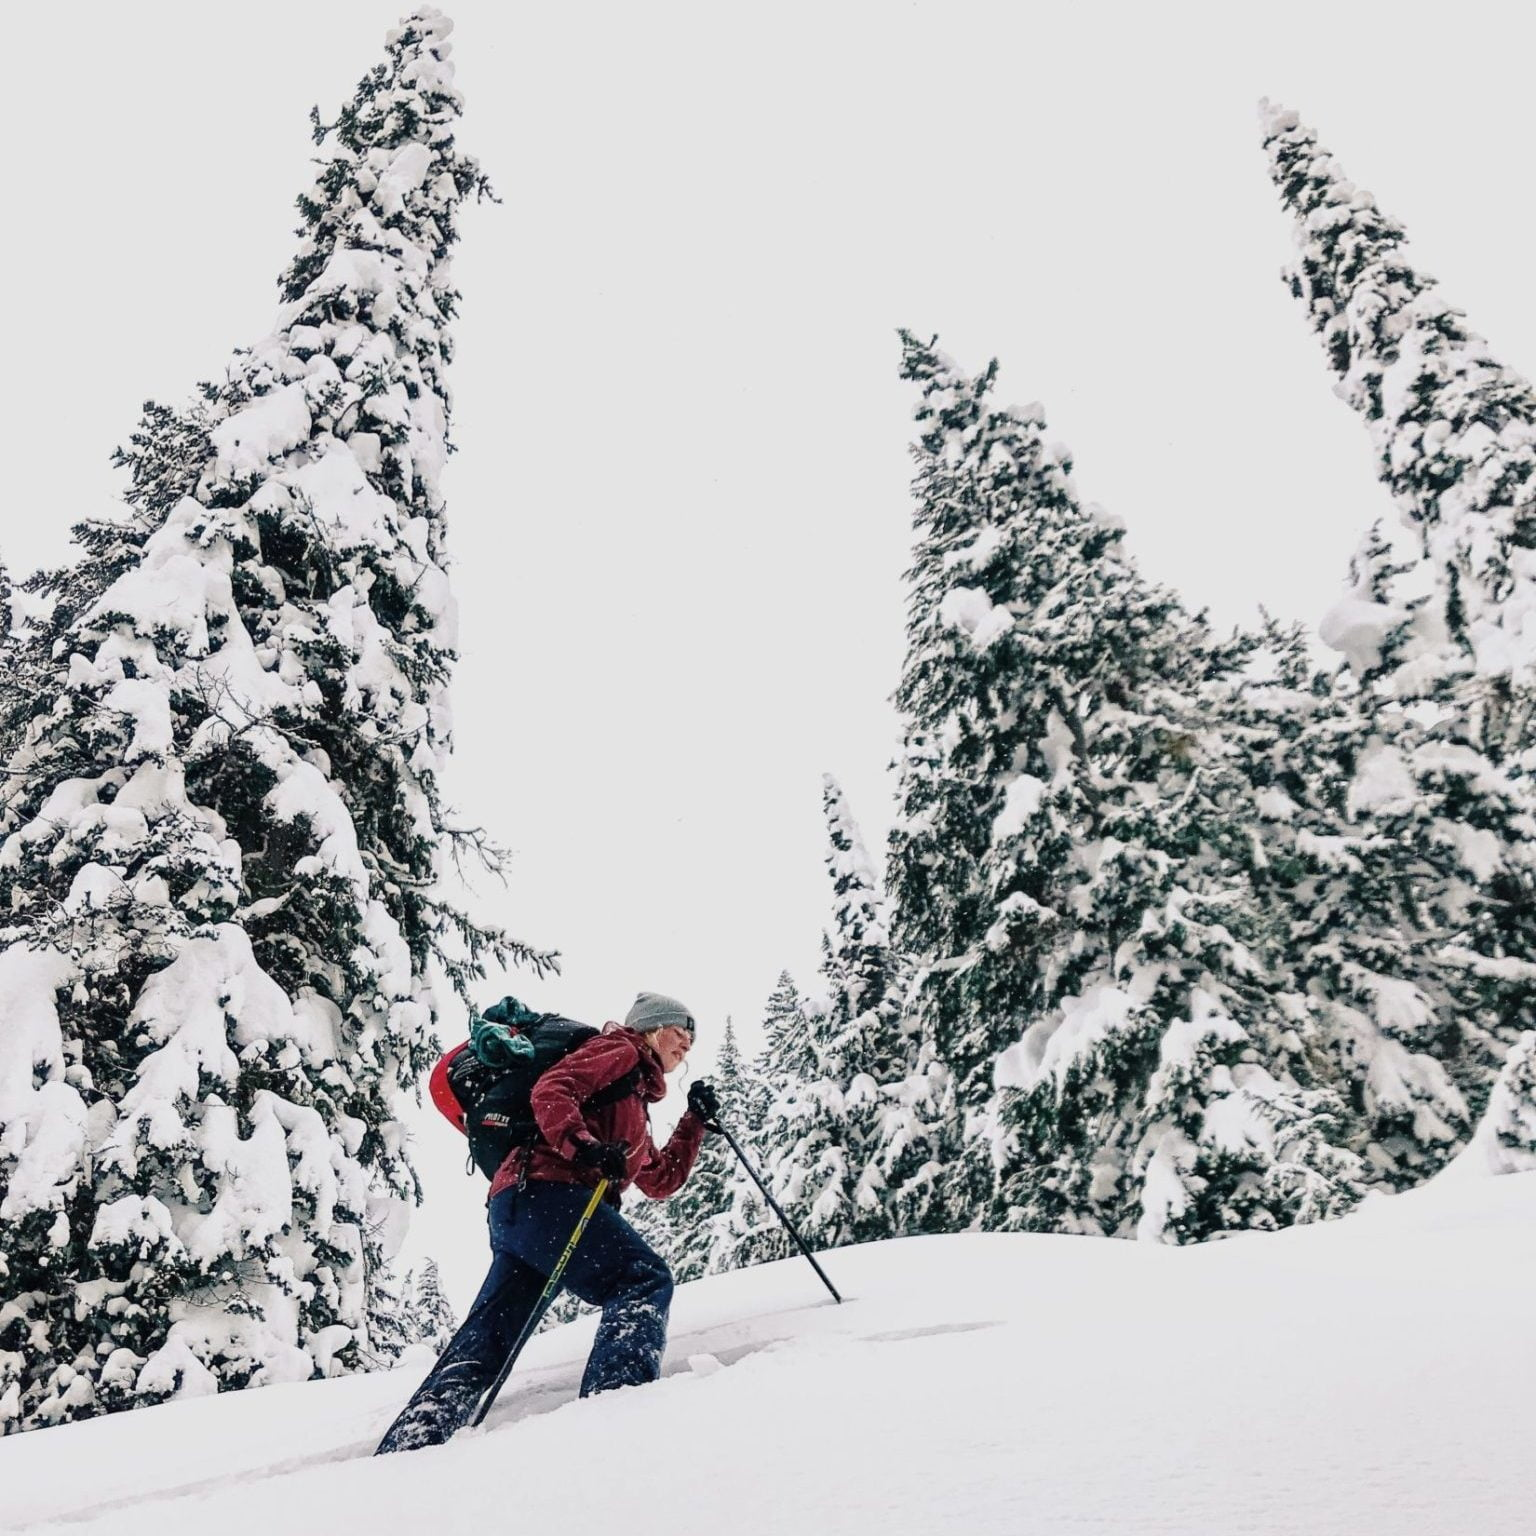 Man traversing in backcountry snow